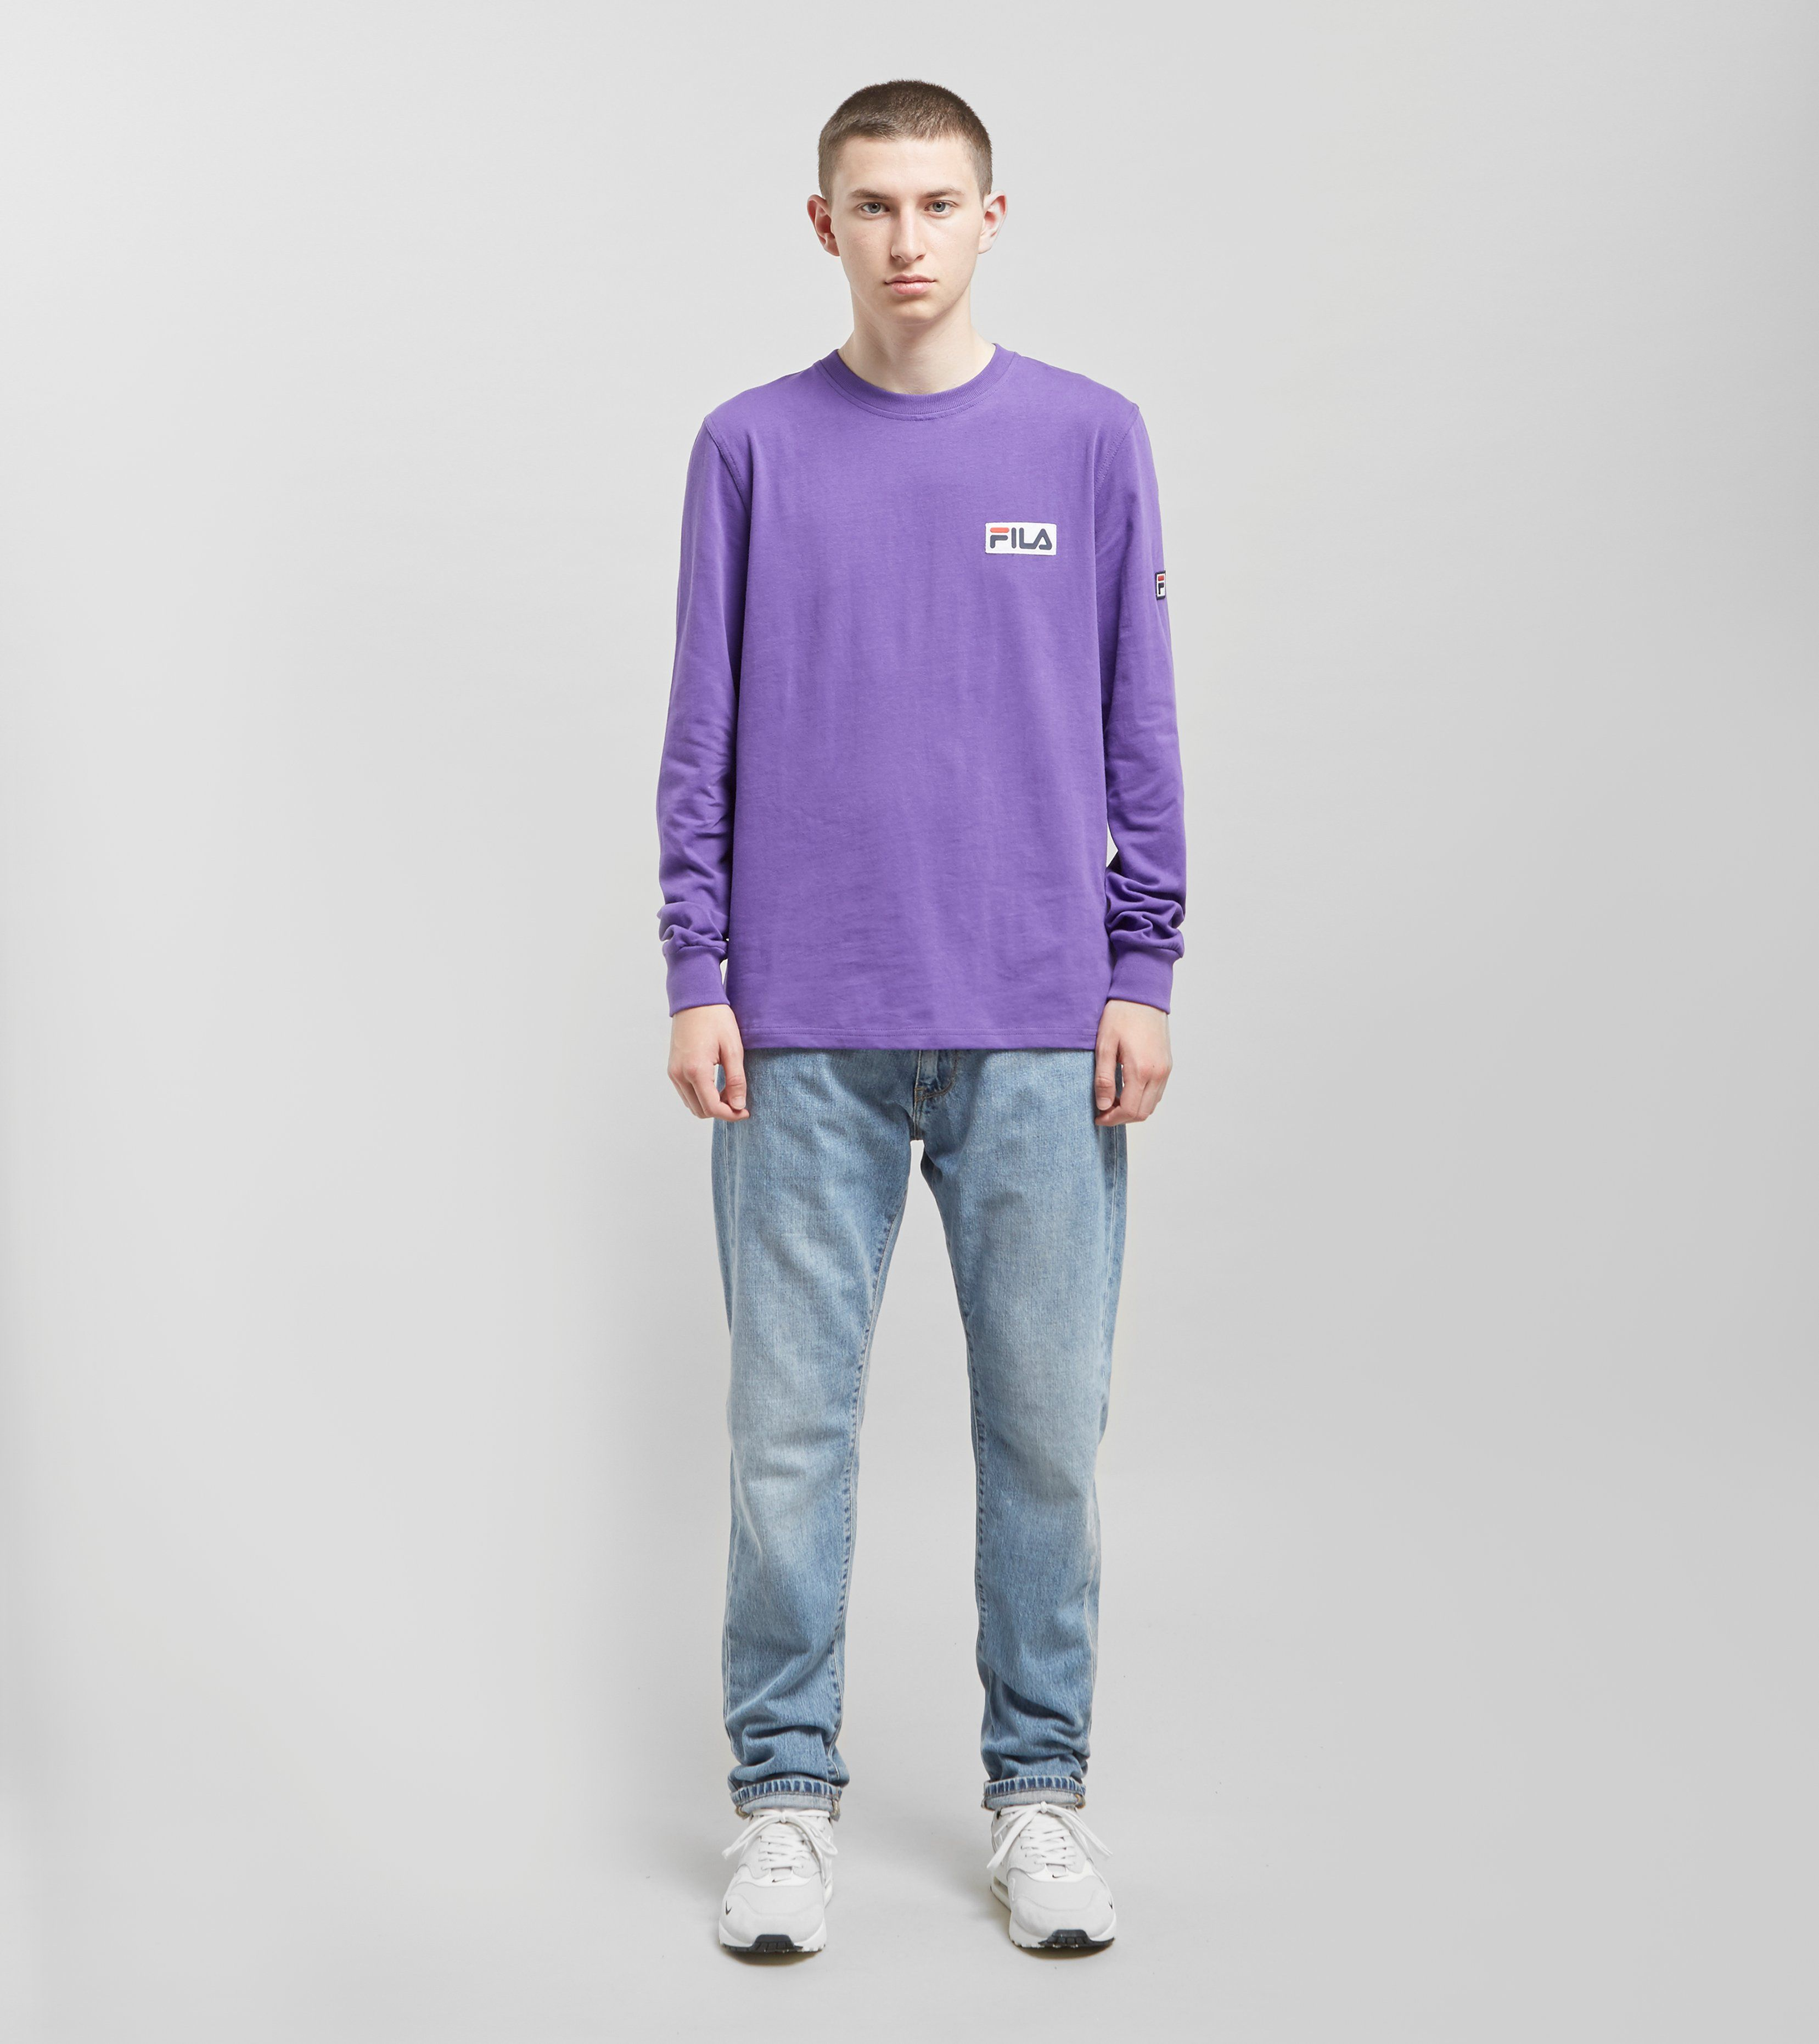 Fila Long Sleeved Viso T-Shirt - size? Exclusive